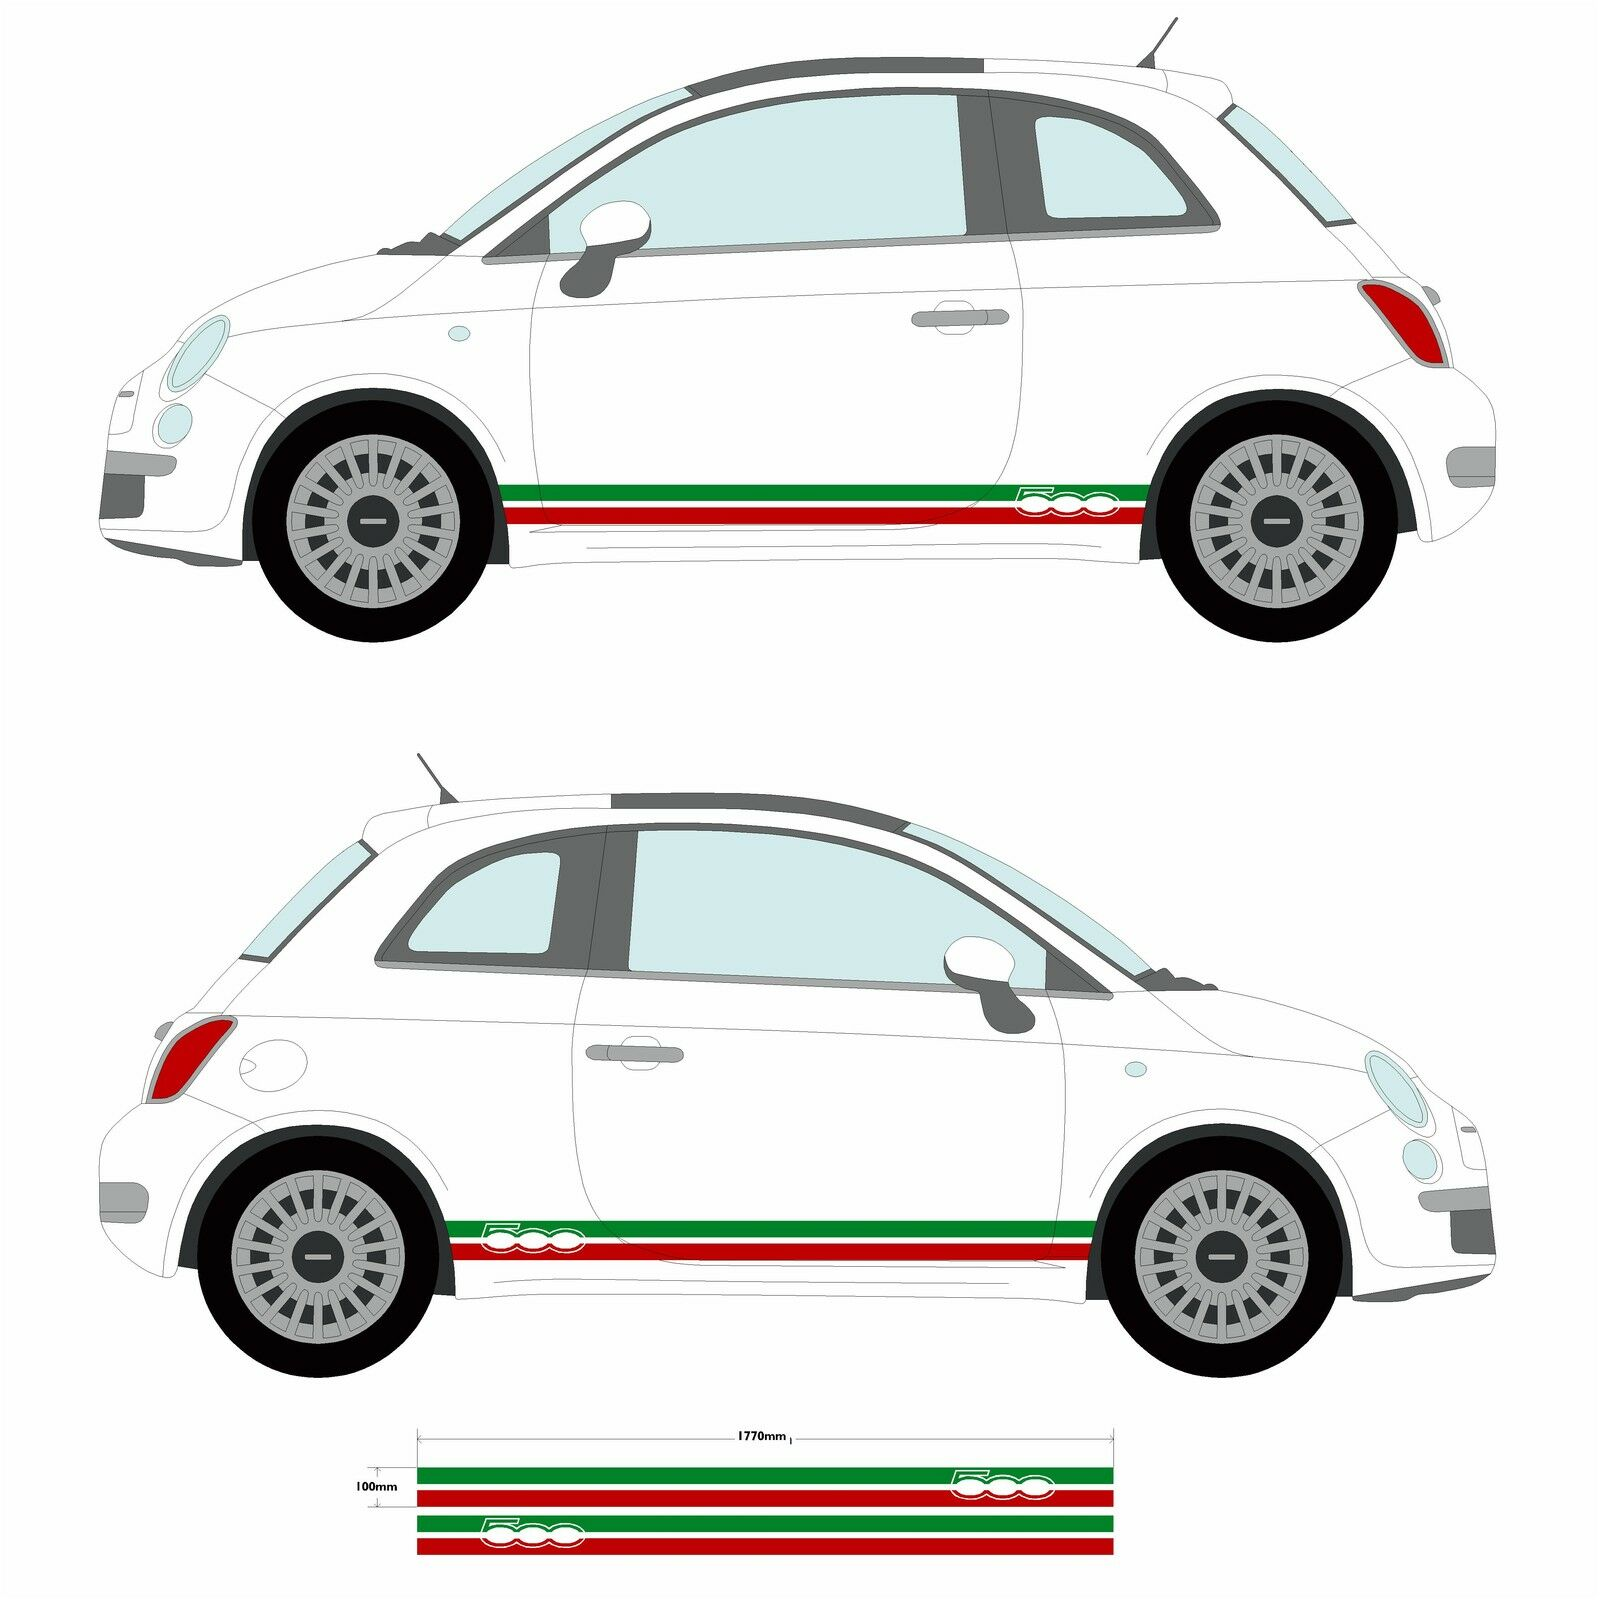 fiat 500 italian flag side skirt stripes stickers car decal graphic picclick uk. Black Bedroom Furniture Sets. Home Design Ideas